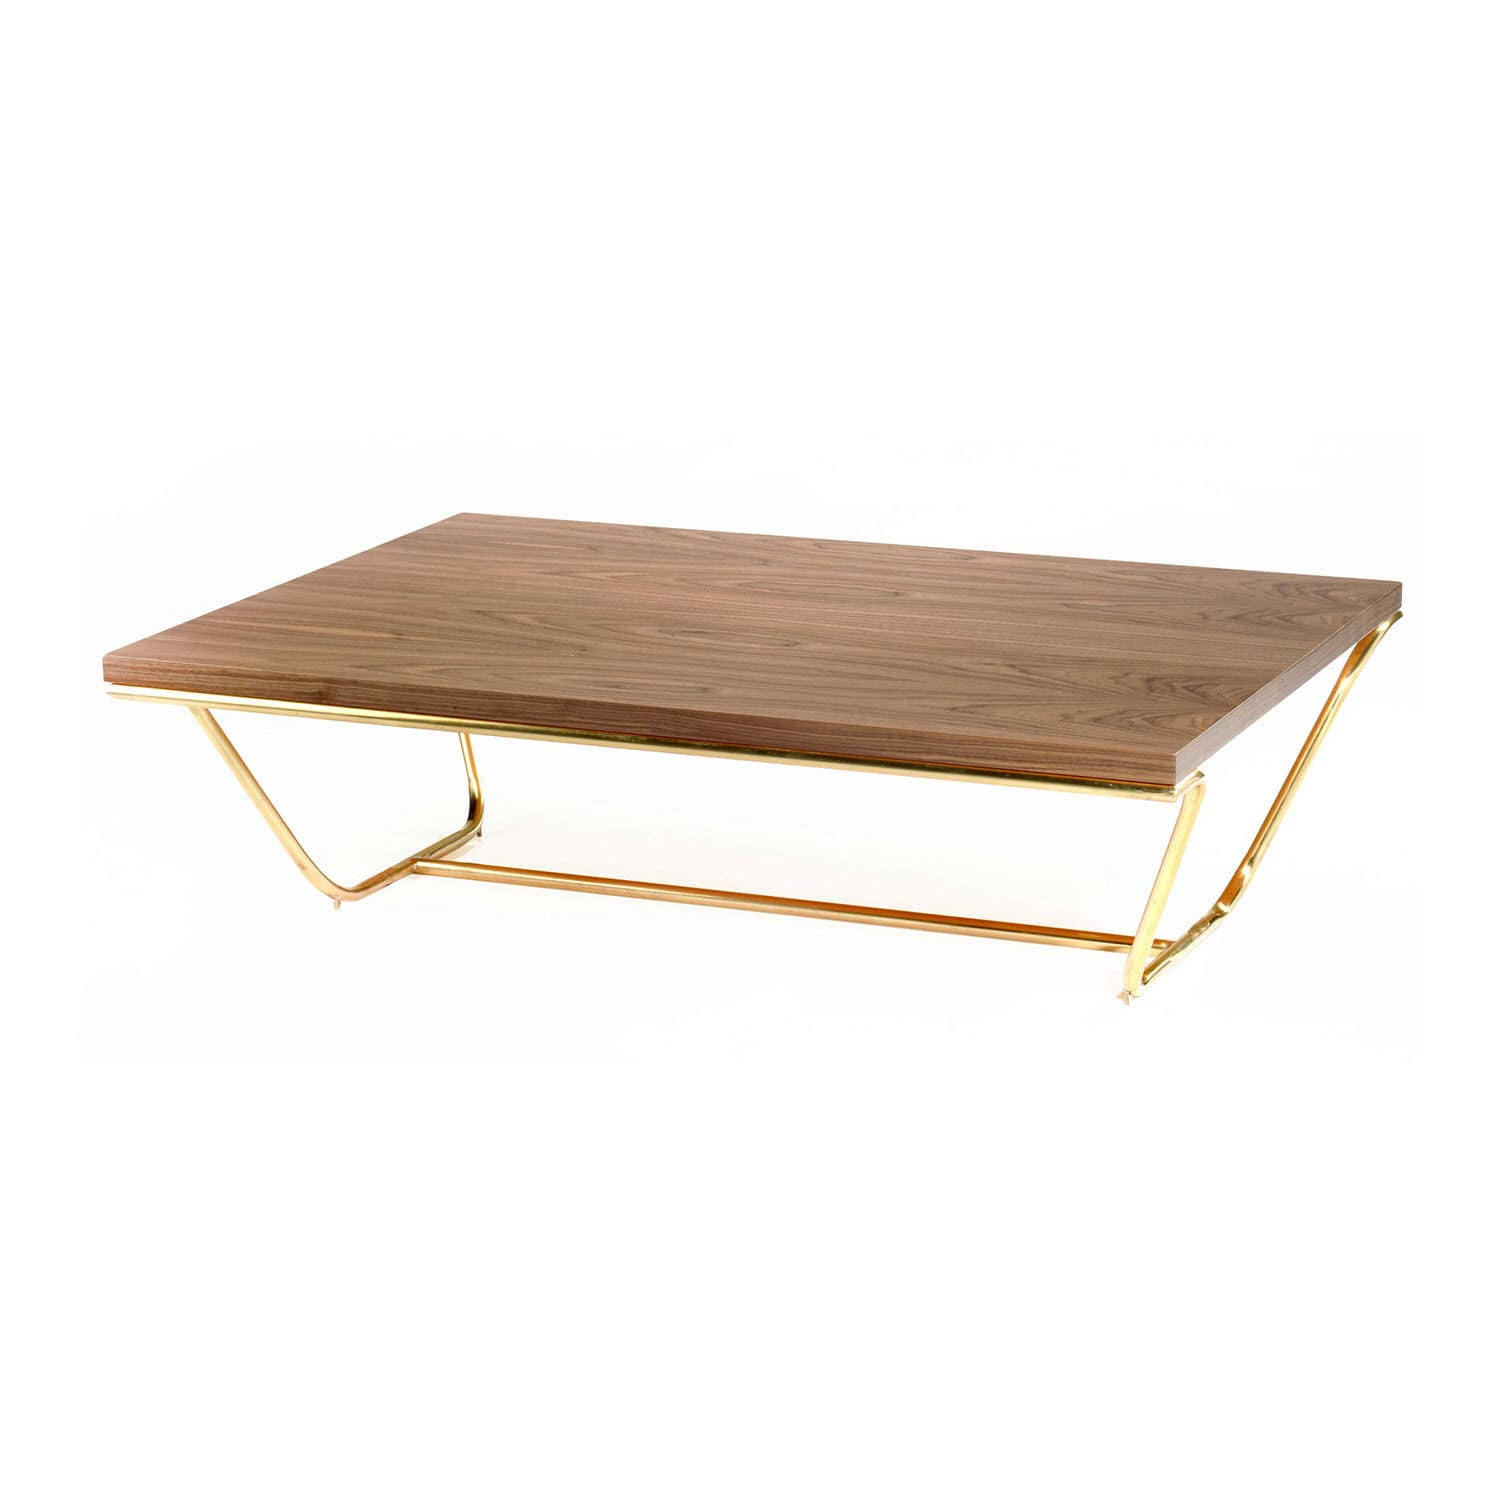 Delightful Contemporary Coffee Table / Walnut / Plywood / Lacquered MDF   SOUL